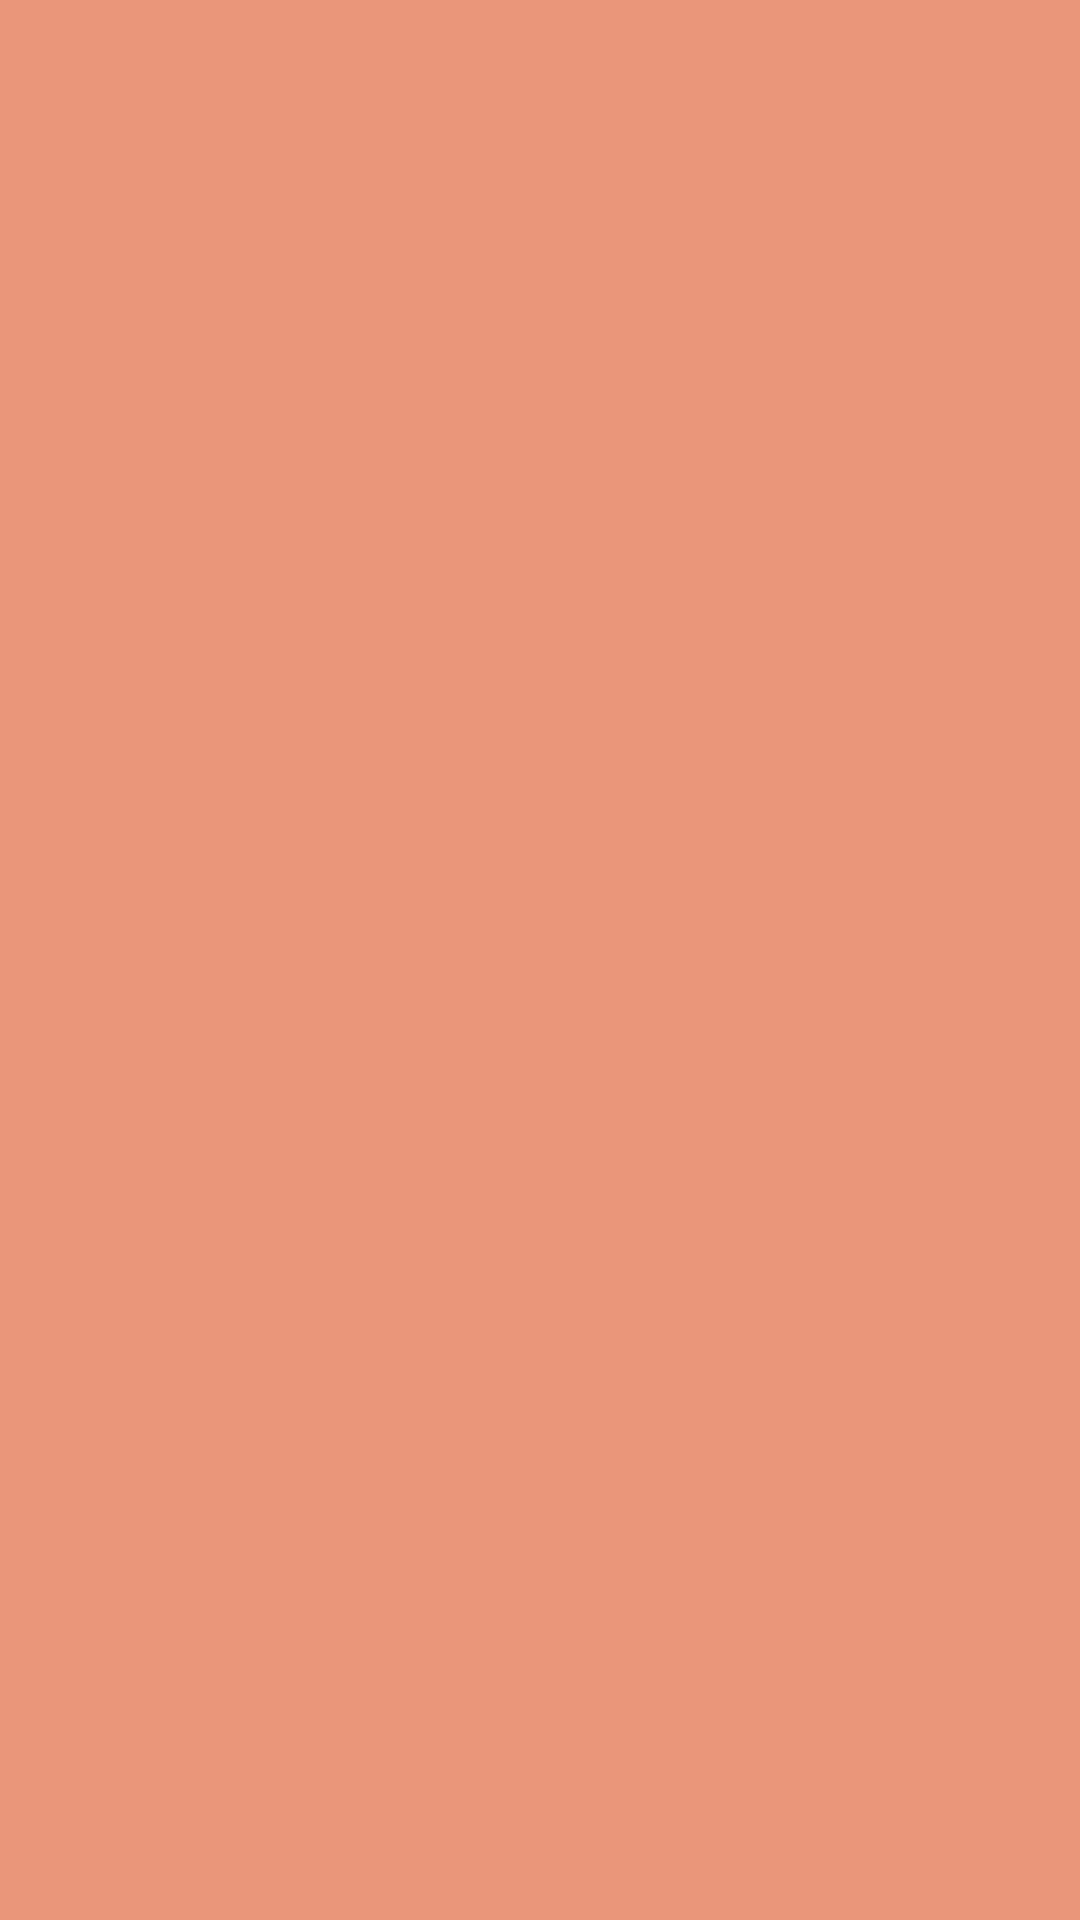 1080x1920 Dark Salmon Solid Color Background